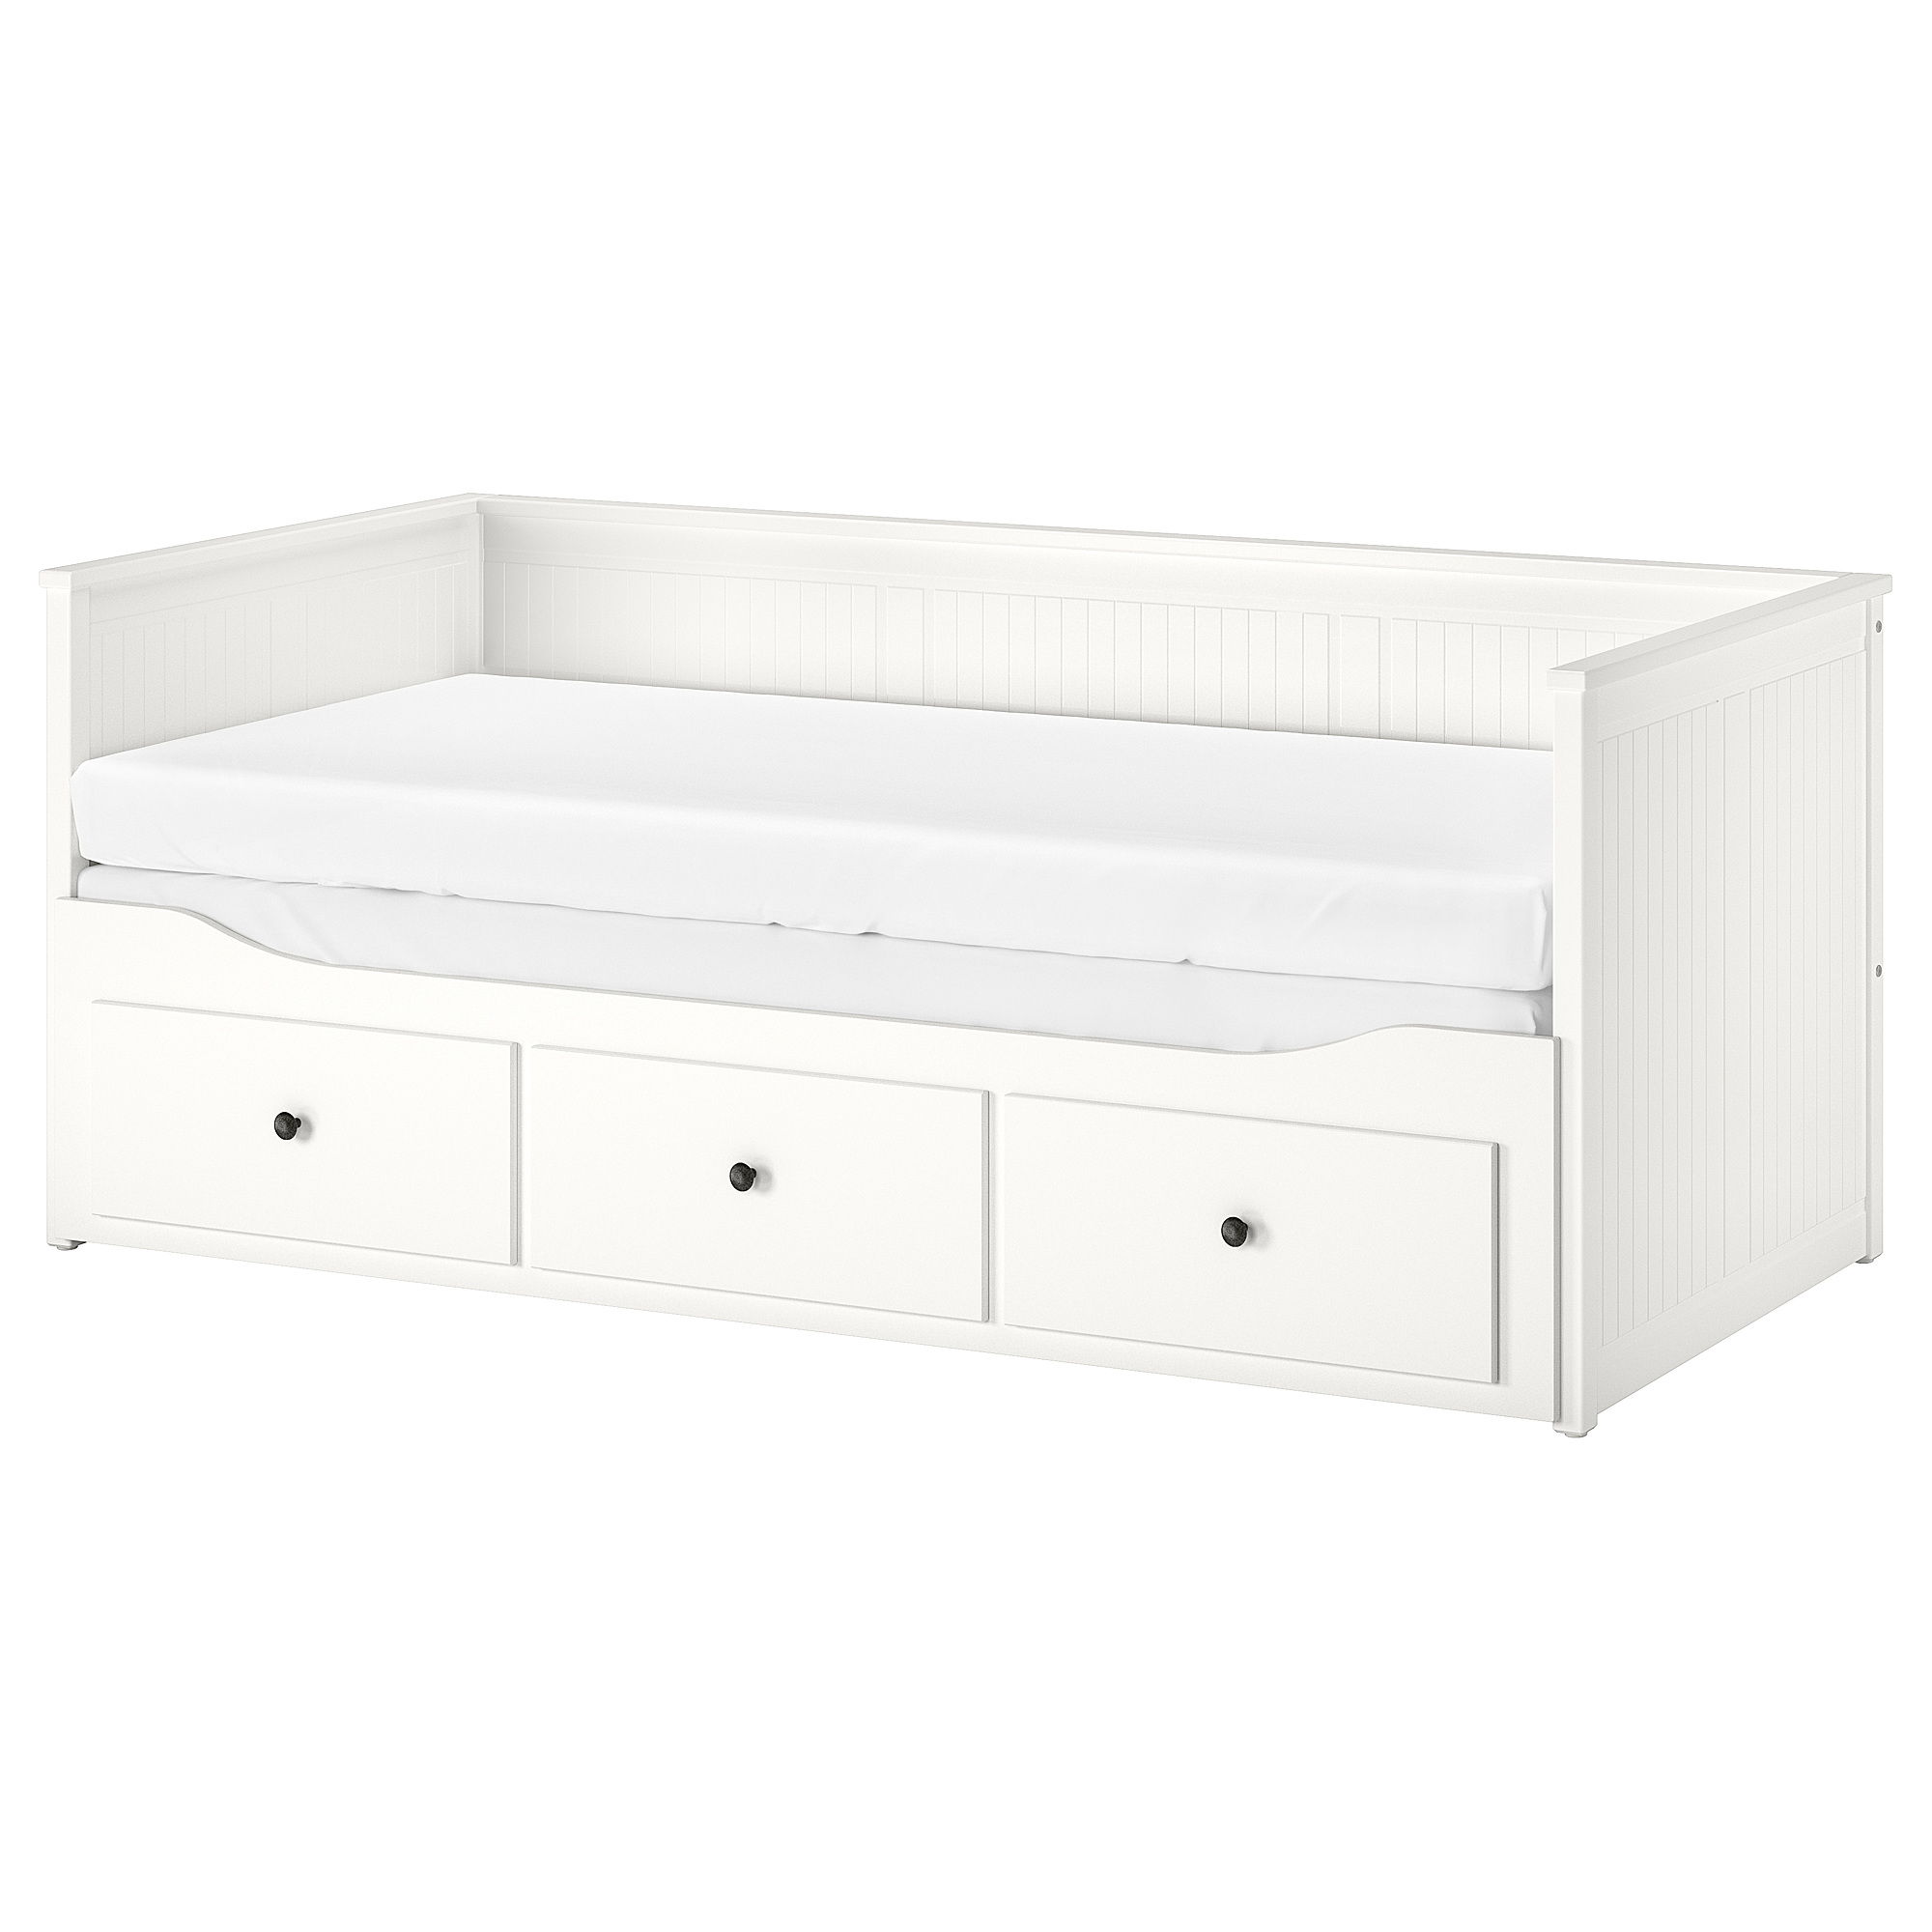 Hemnes Day Bed Frame With 3 Drawers White Ikea Hong Kong And Macau